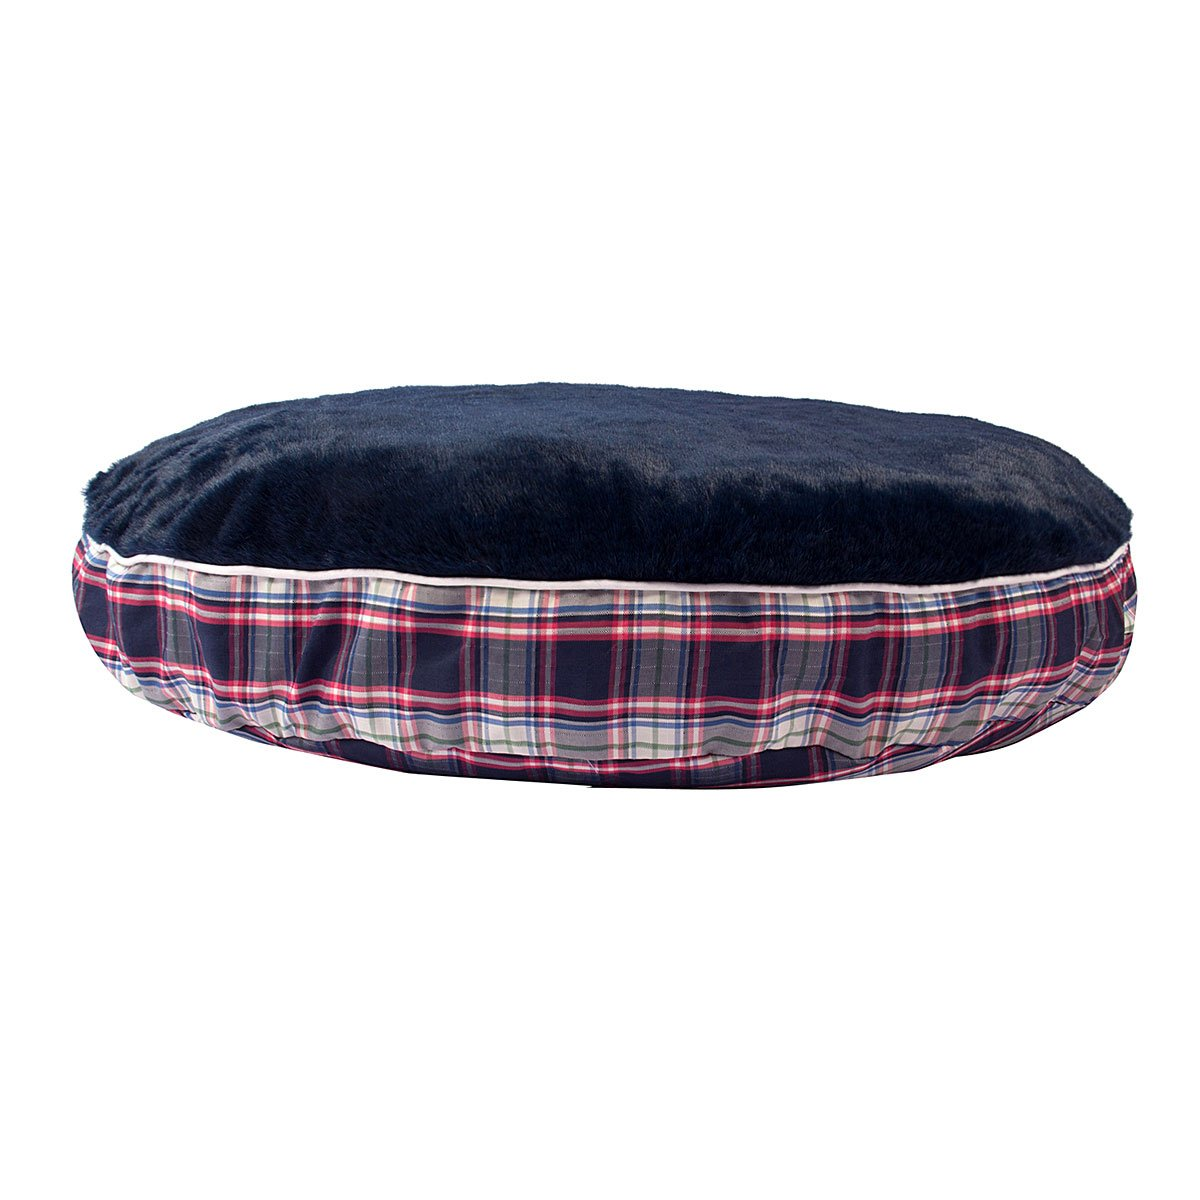 Amber Plaid Round Dog Bed - Halo - Breeches.com